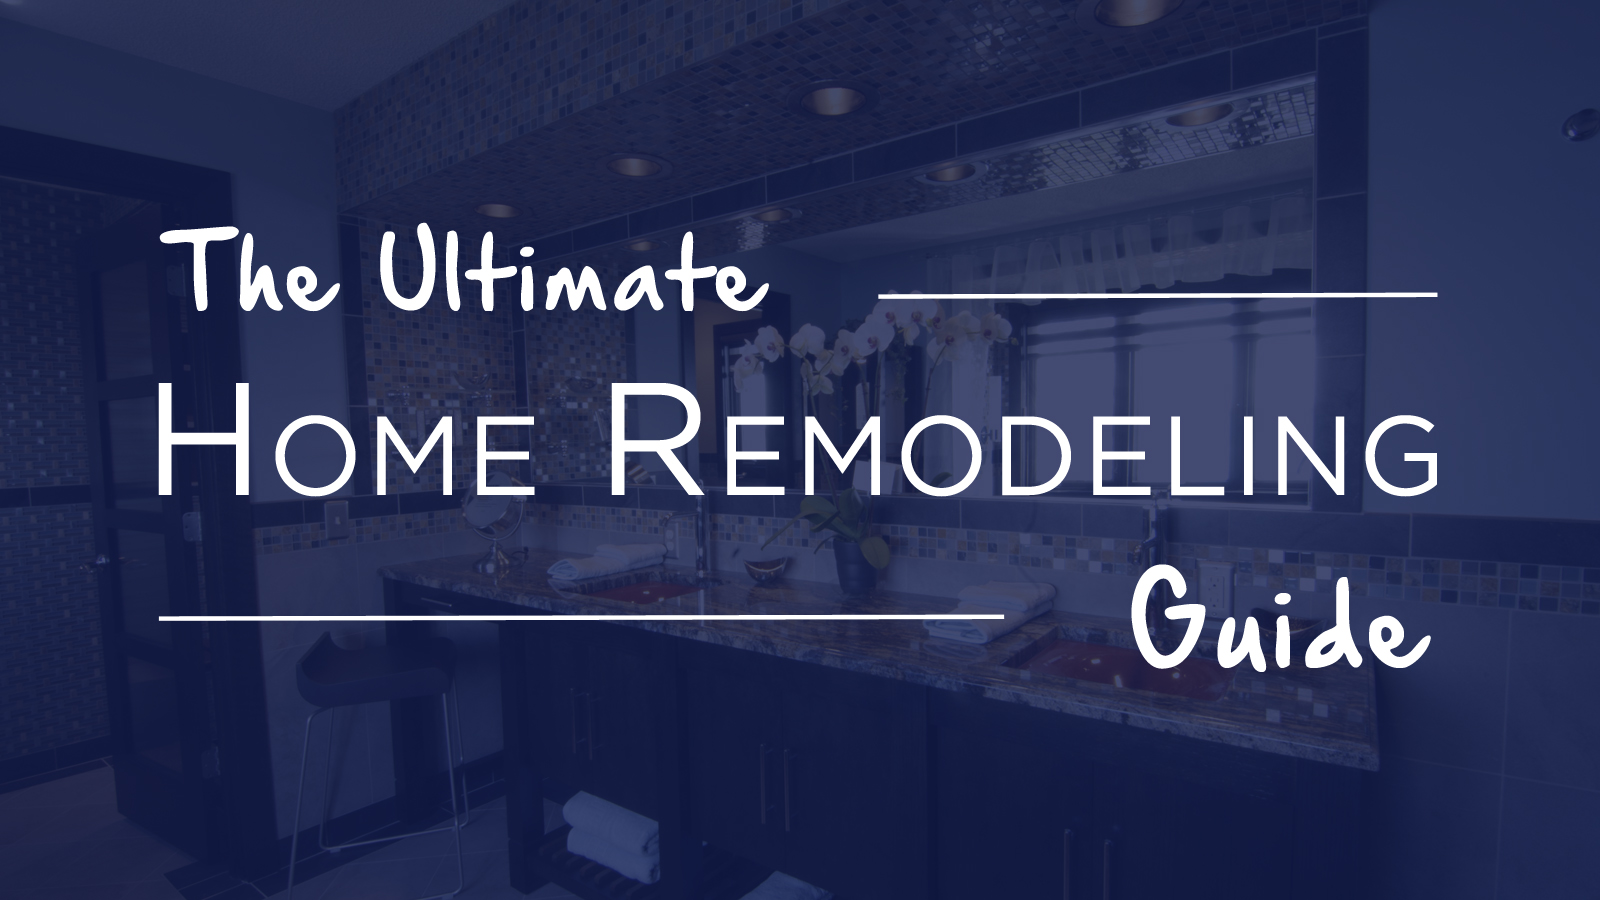 The Ultimate Remodeling Guide